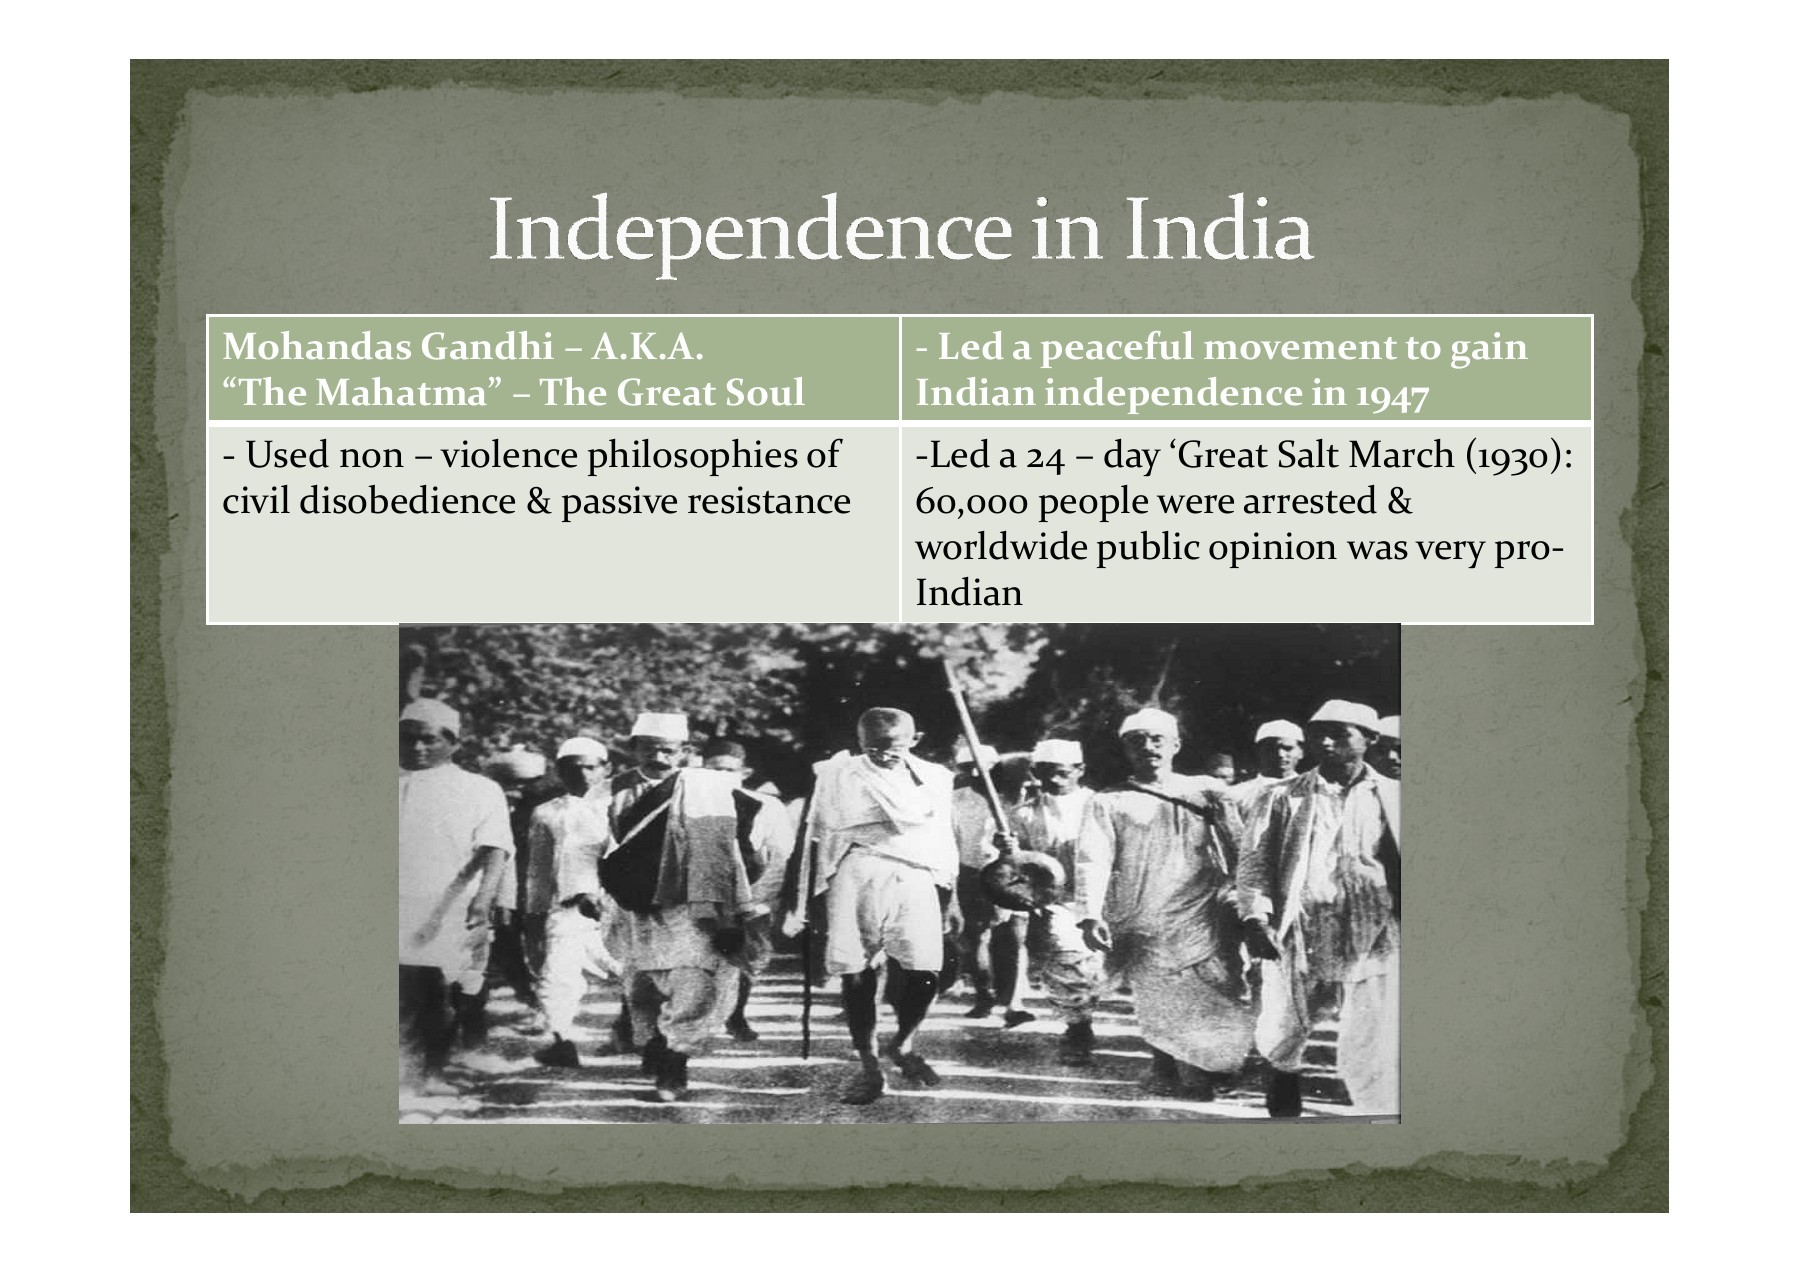 Aim: How did India gain their independence from Great